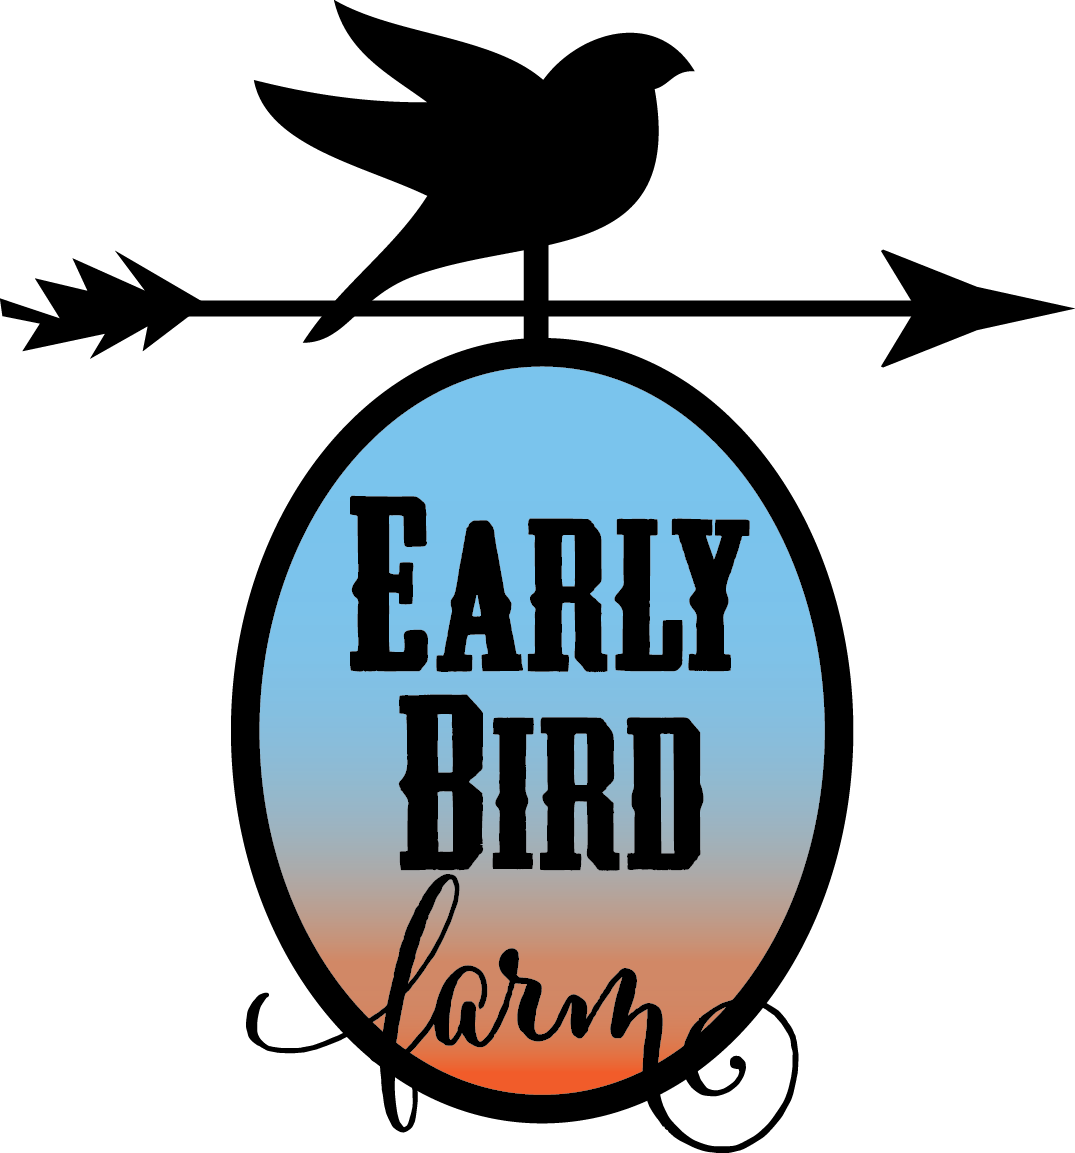 Early Bird Farm